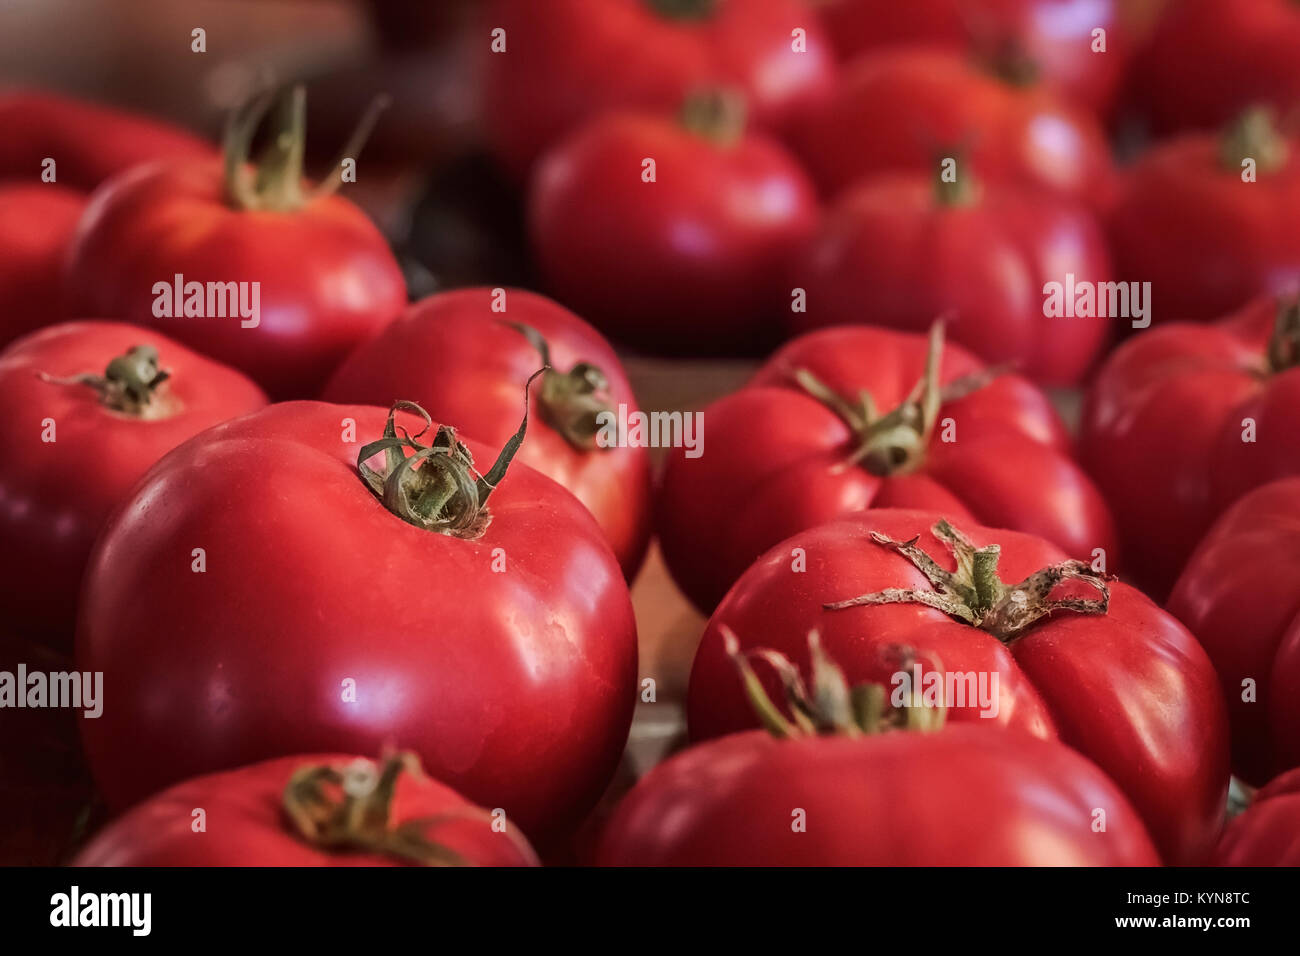 Ripe, red, organic, homegrown heritage variety tomatoes fill the frame, with side lighting and selective focus on - Stock Image